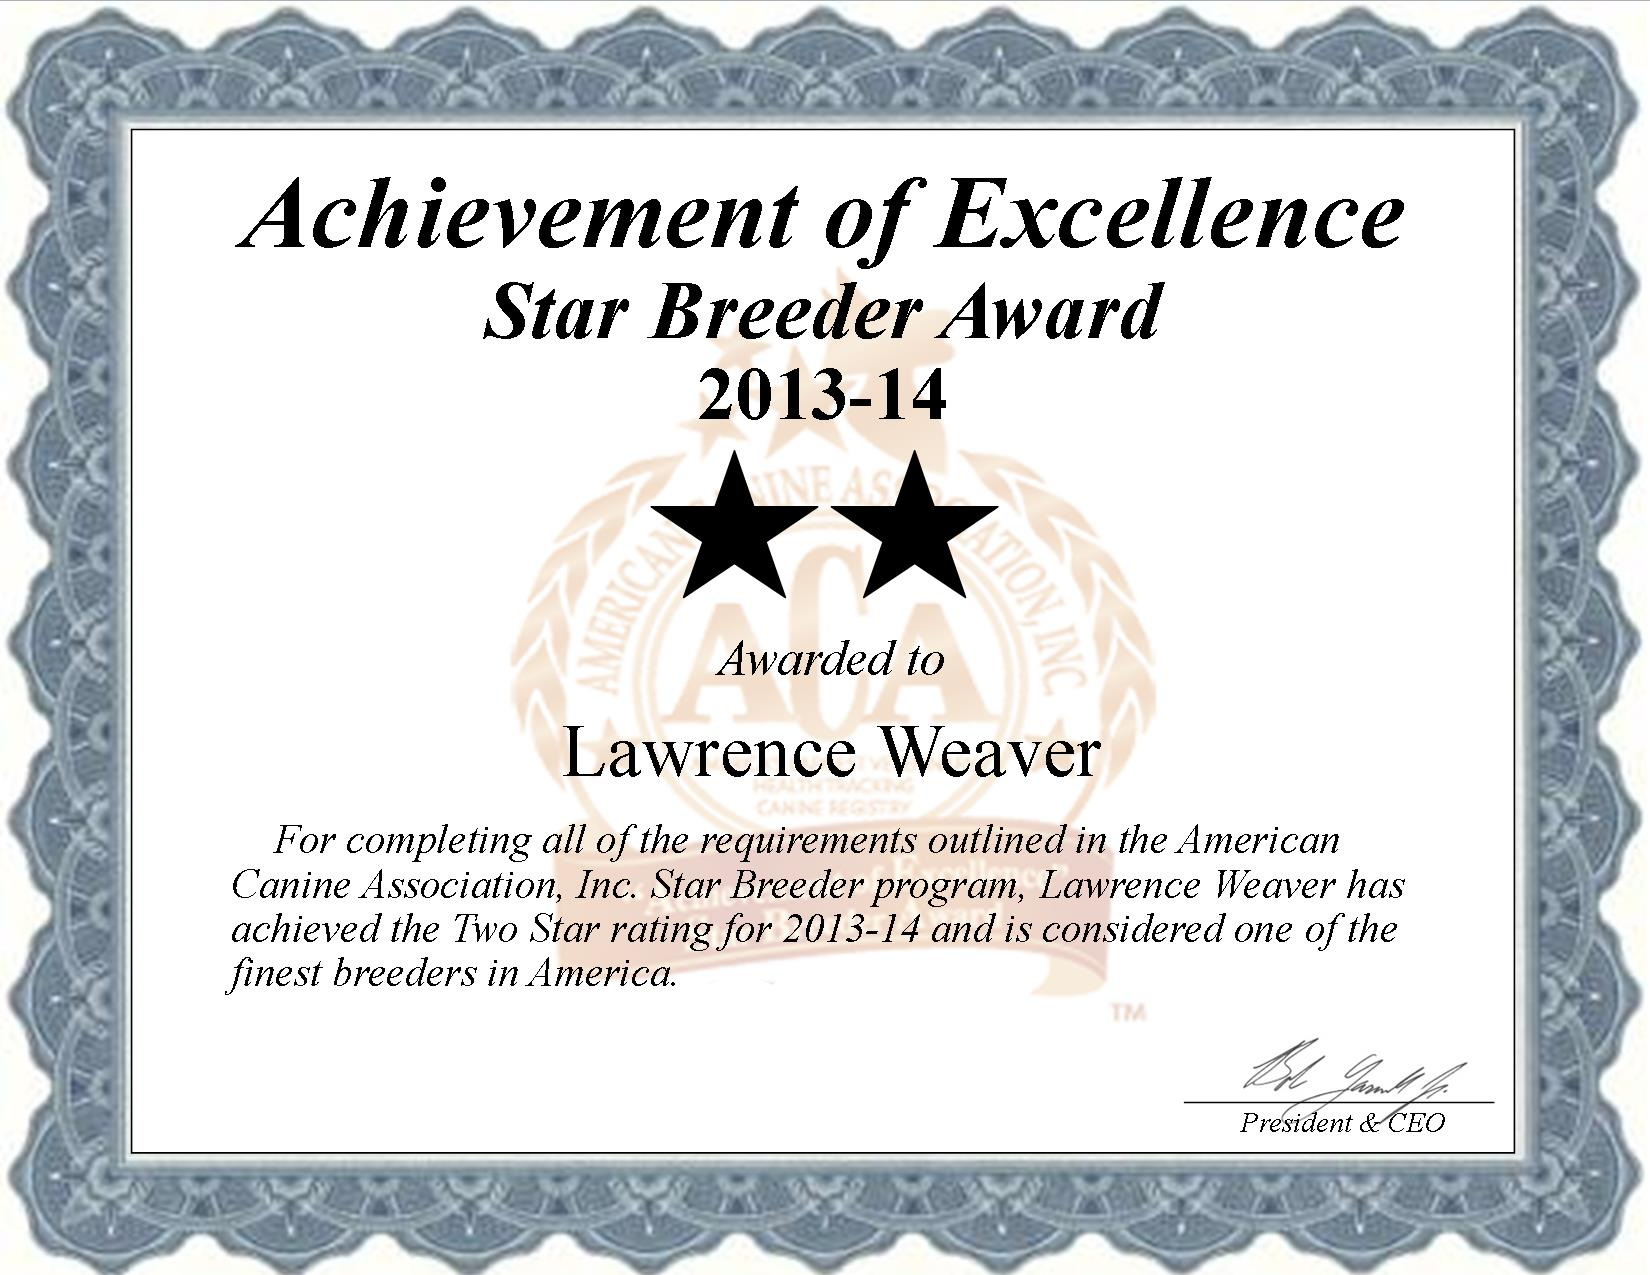 Lawrence Weaver, Weaver Kennel, Lawrence, Weaver, Weaver Kennel, Weaver, dundee, ny, new york, breeder, star breeder, starbreeder, 2 star, dog, puppy, puppies, five star